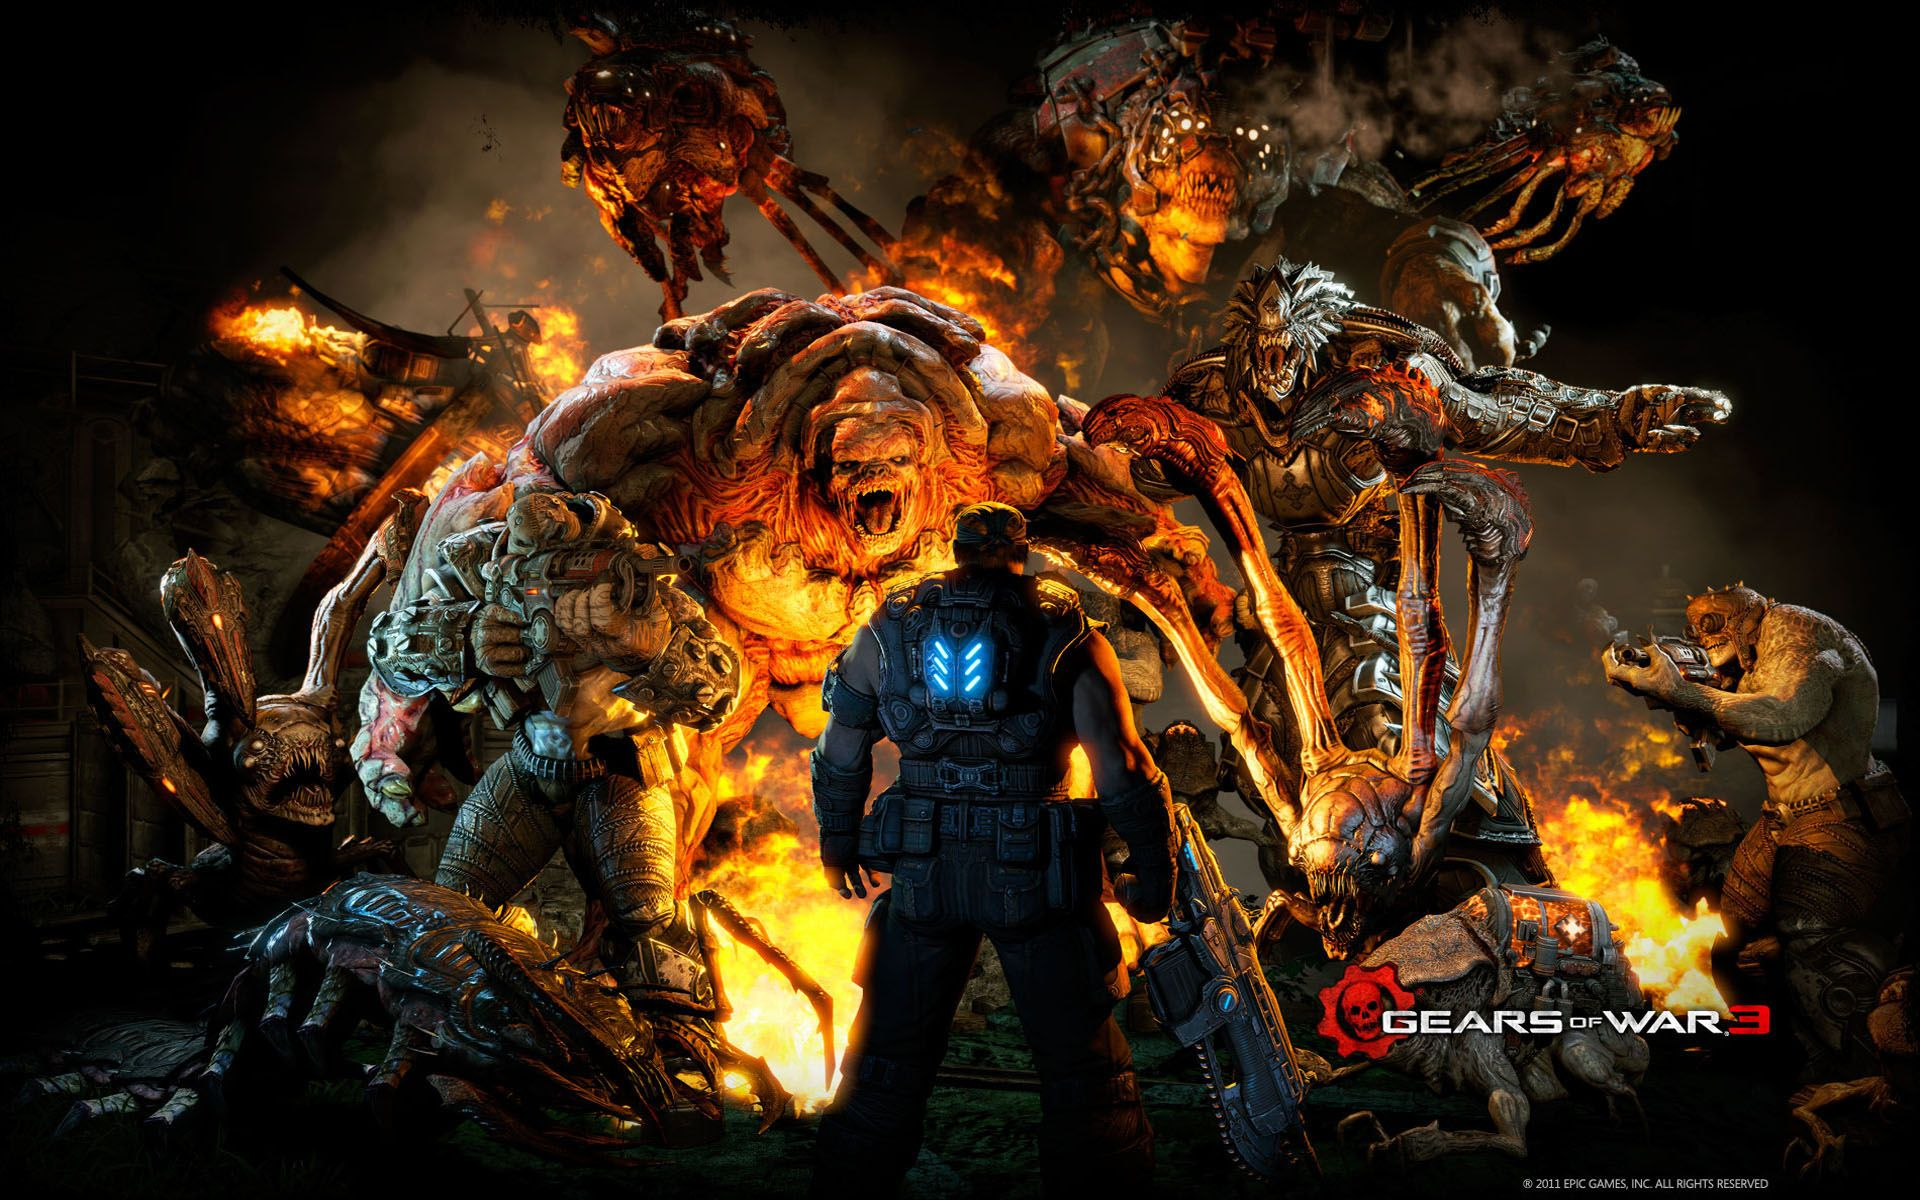 Gears Of War 3 Mission Wallpapers Hd With Images Gears Of War